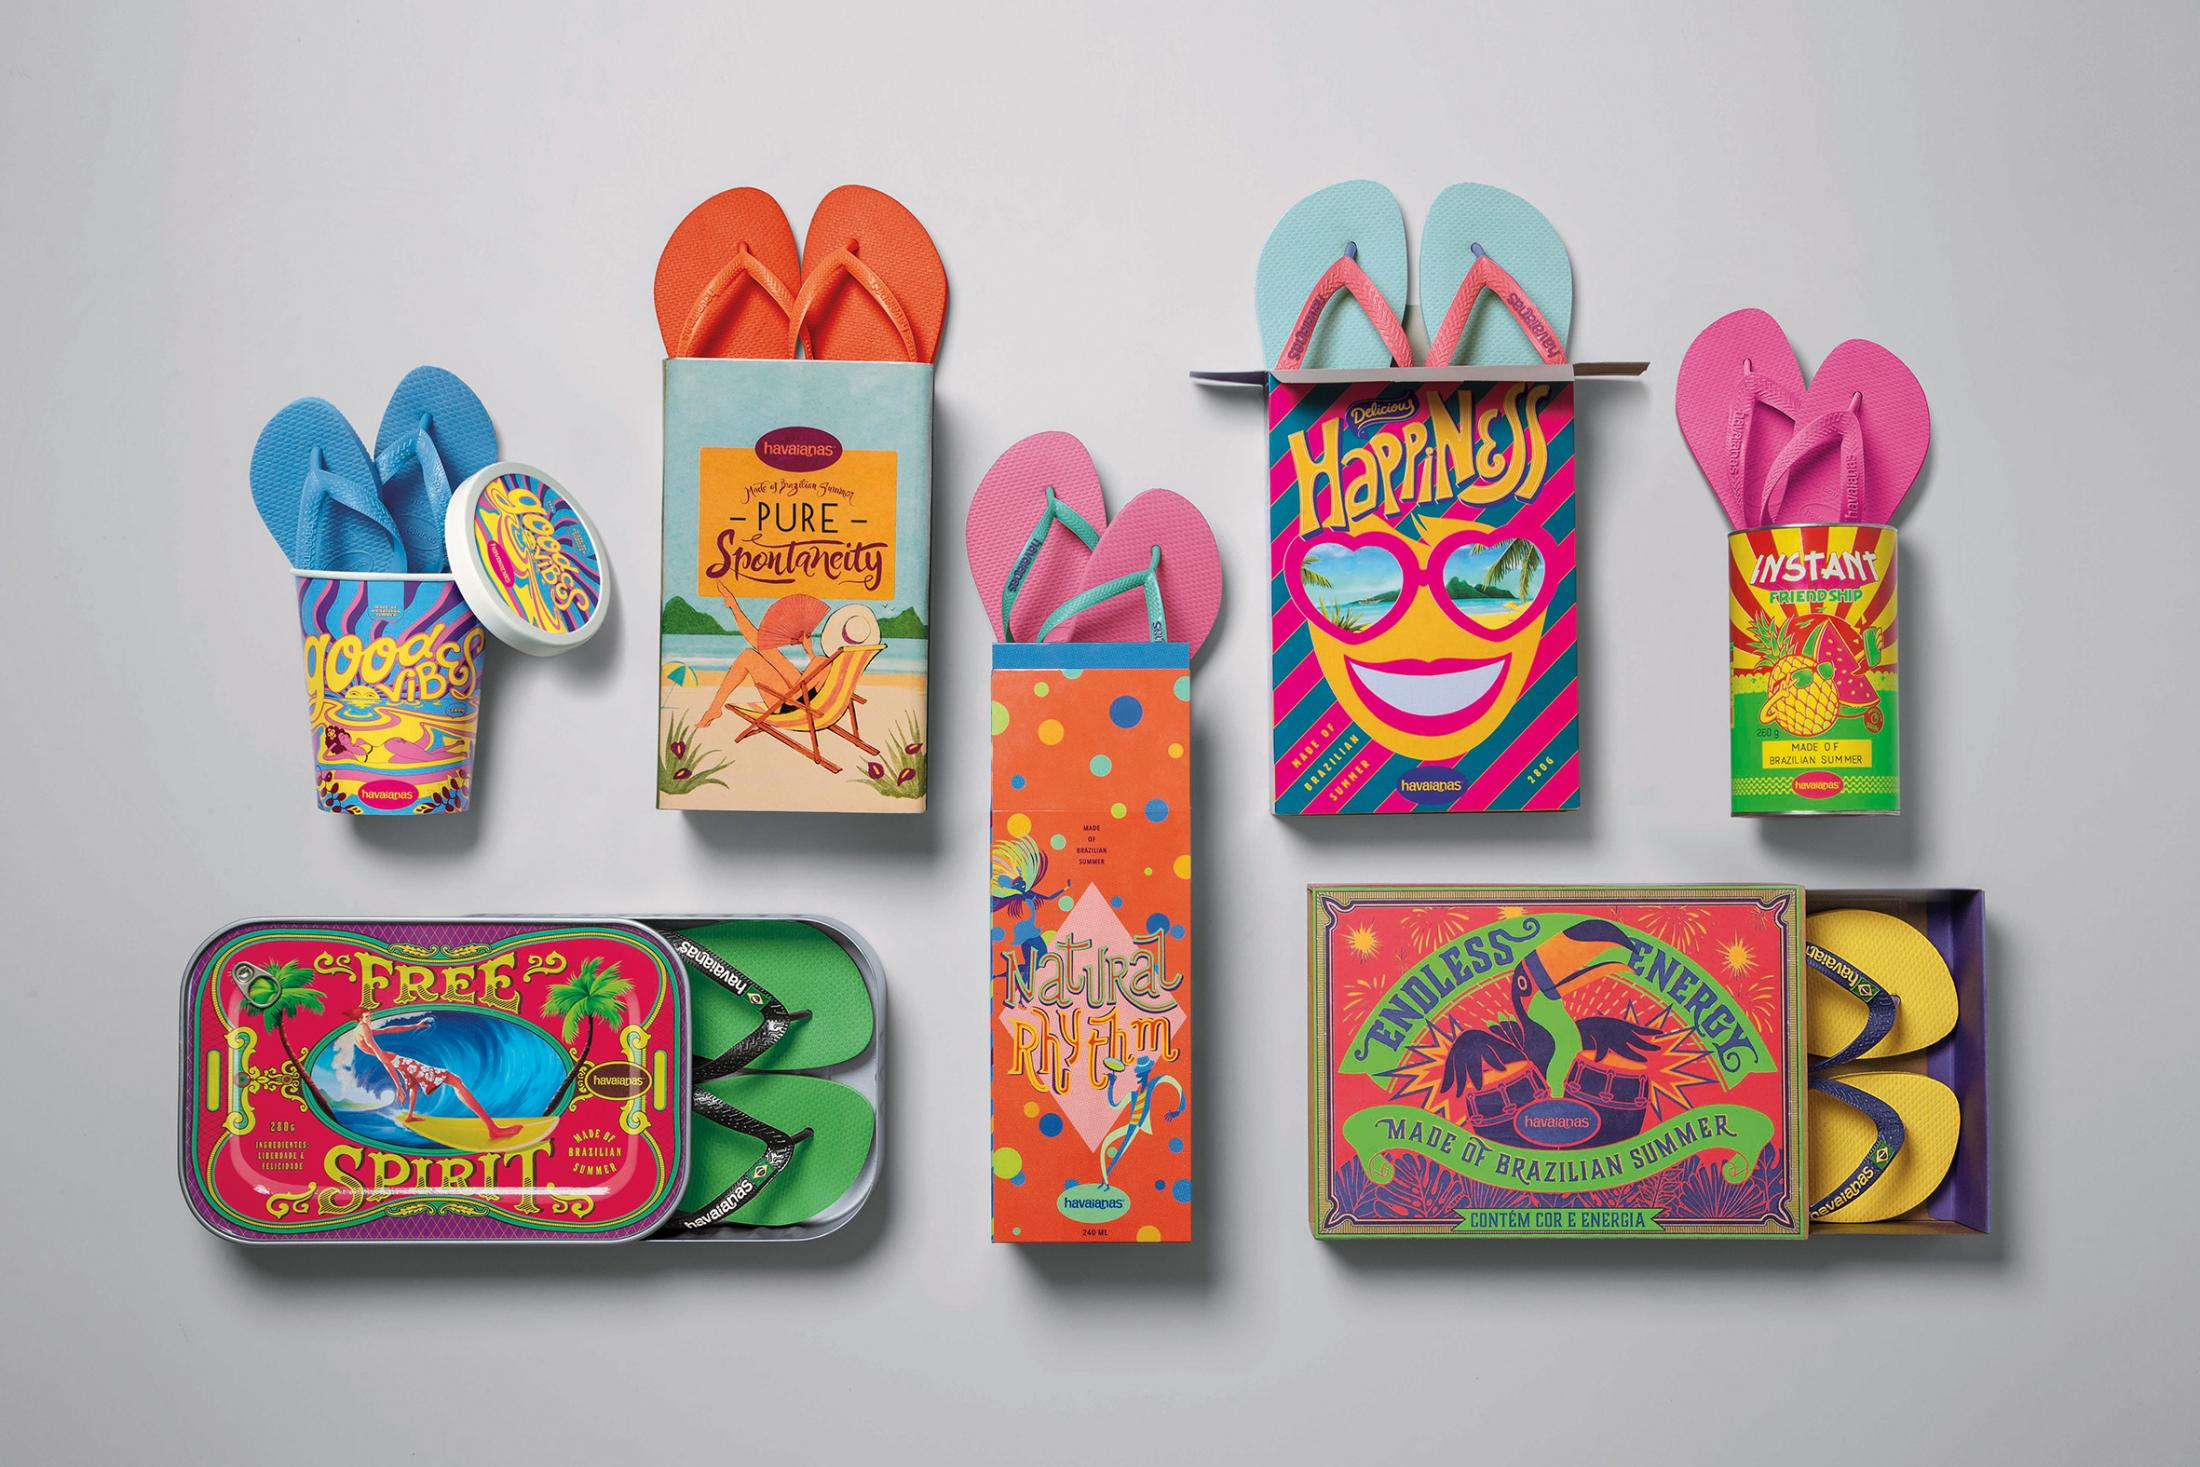 Havaianas Integrated Ad - Made of Brazilian Summer